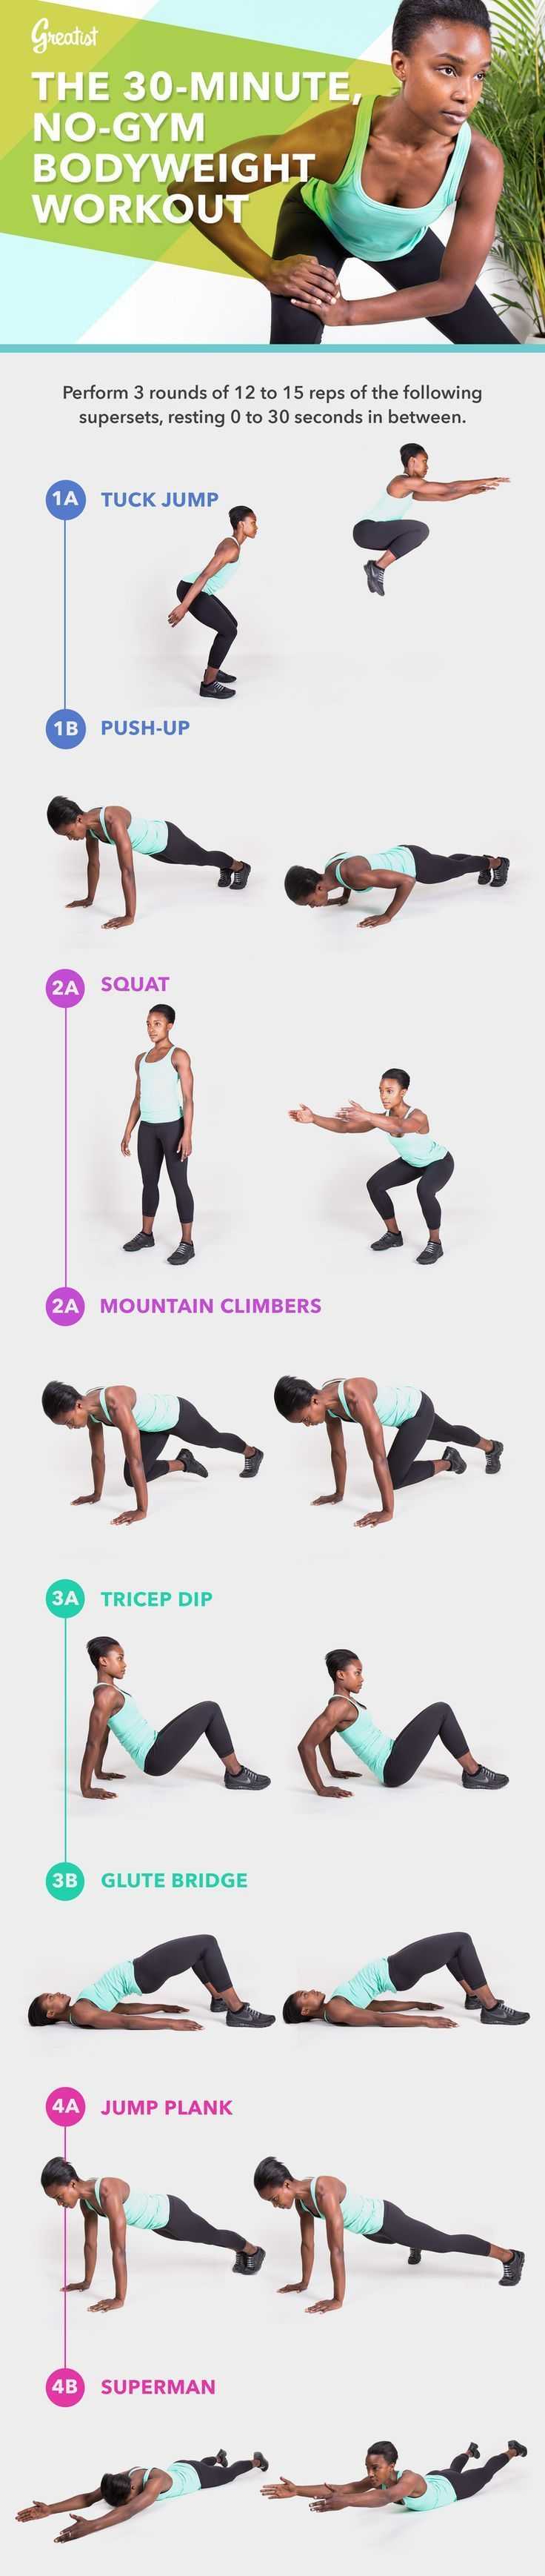 30-Minute Home Bodyweight Workout - Quick and Easy Workout You Can do Anywhere #fitness #bodyweight #workout